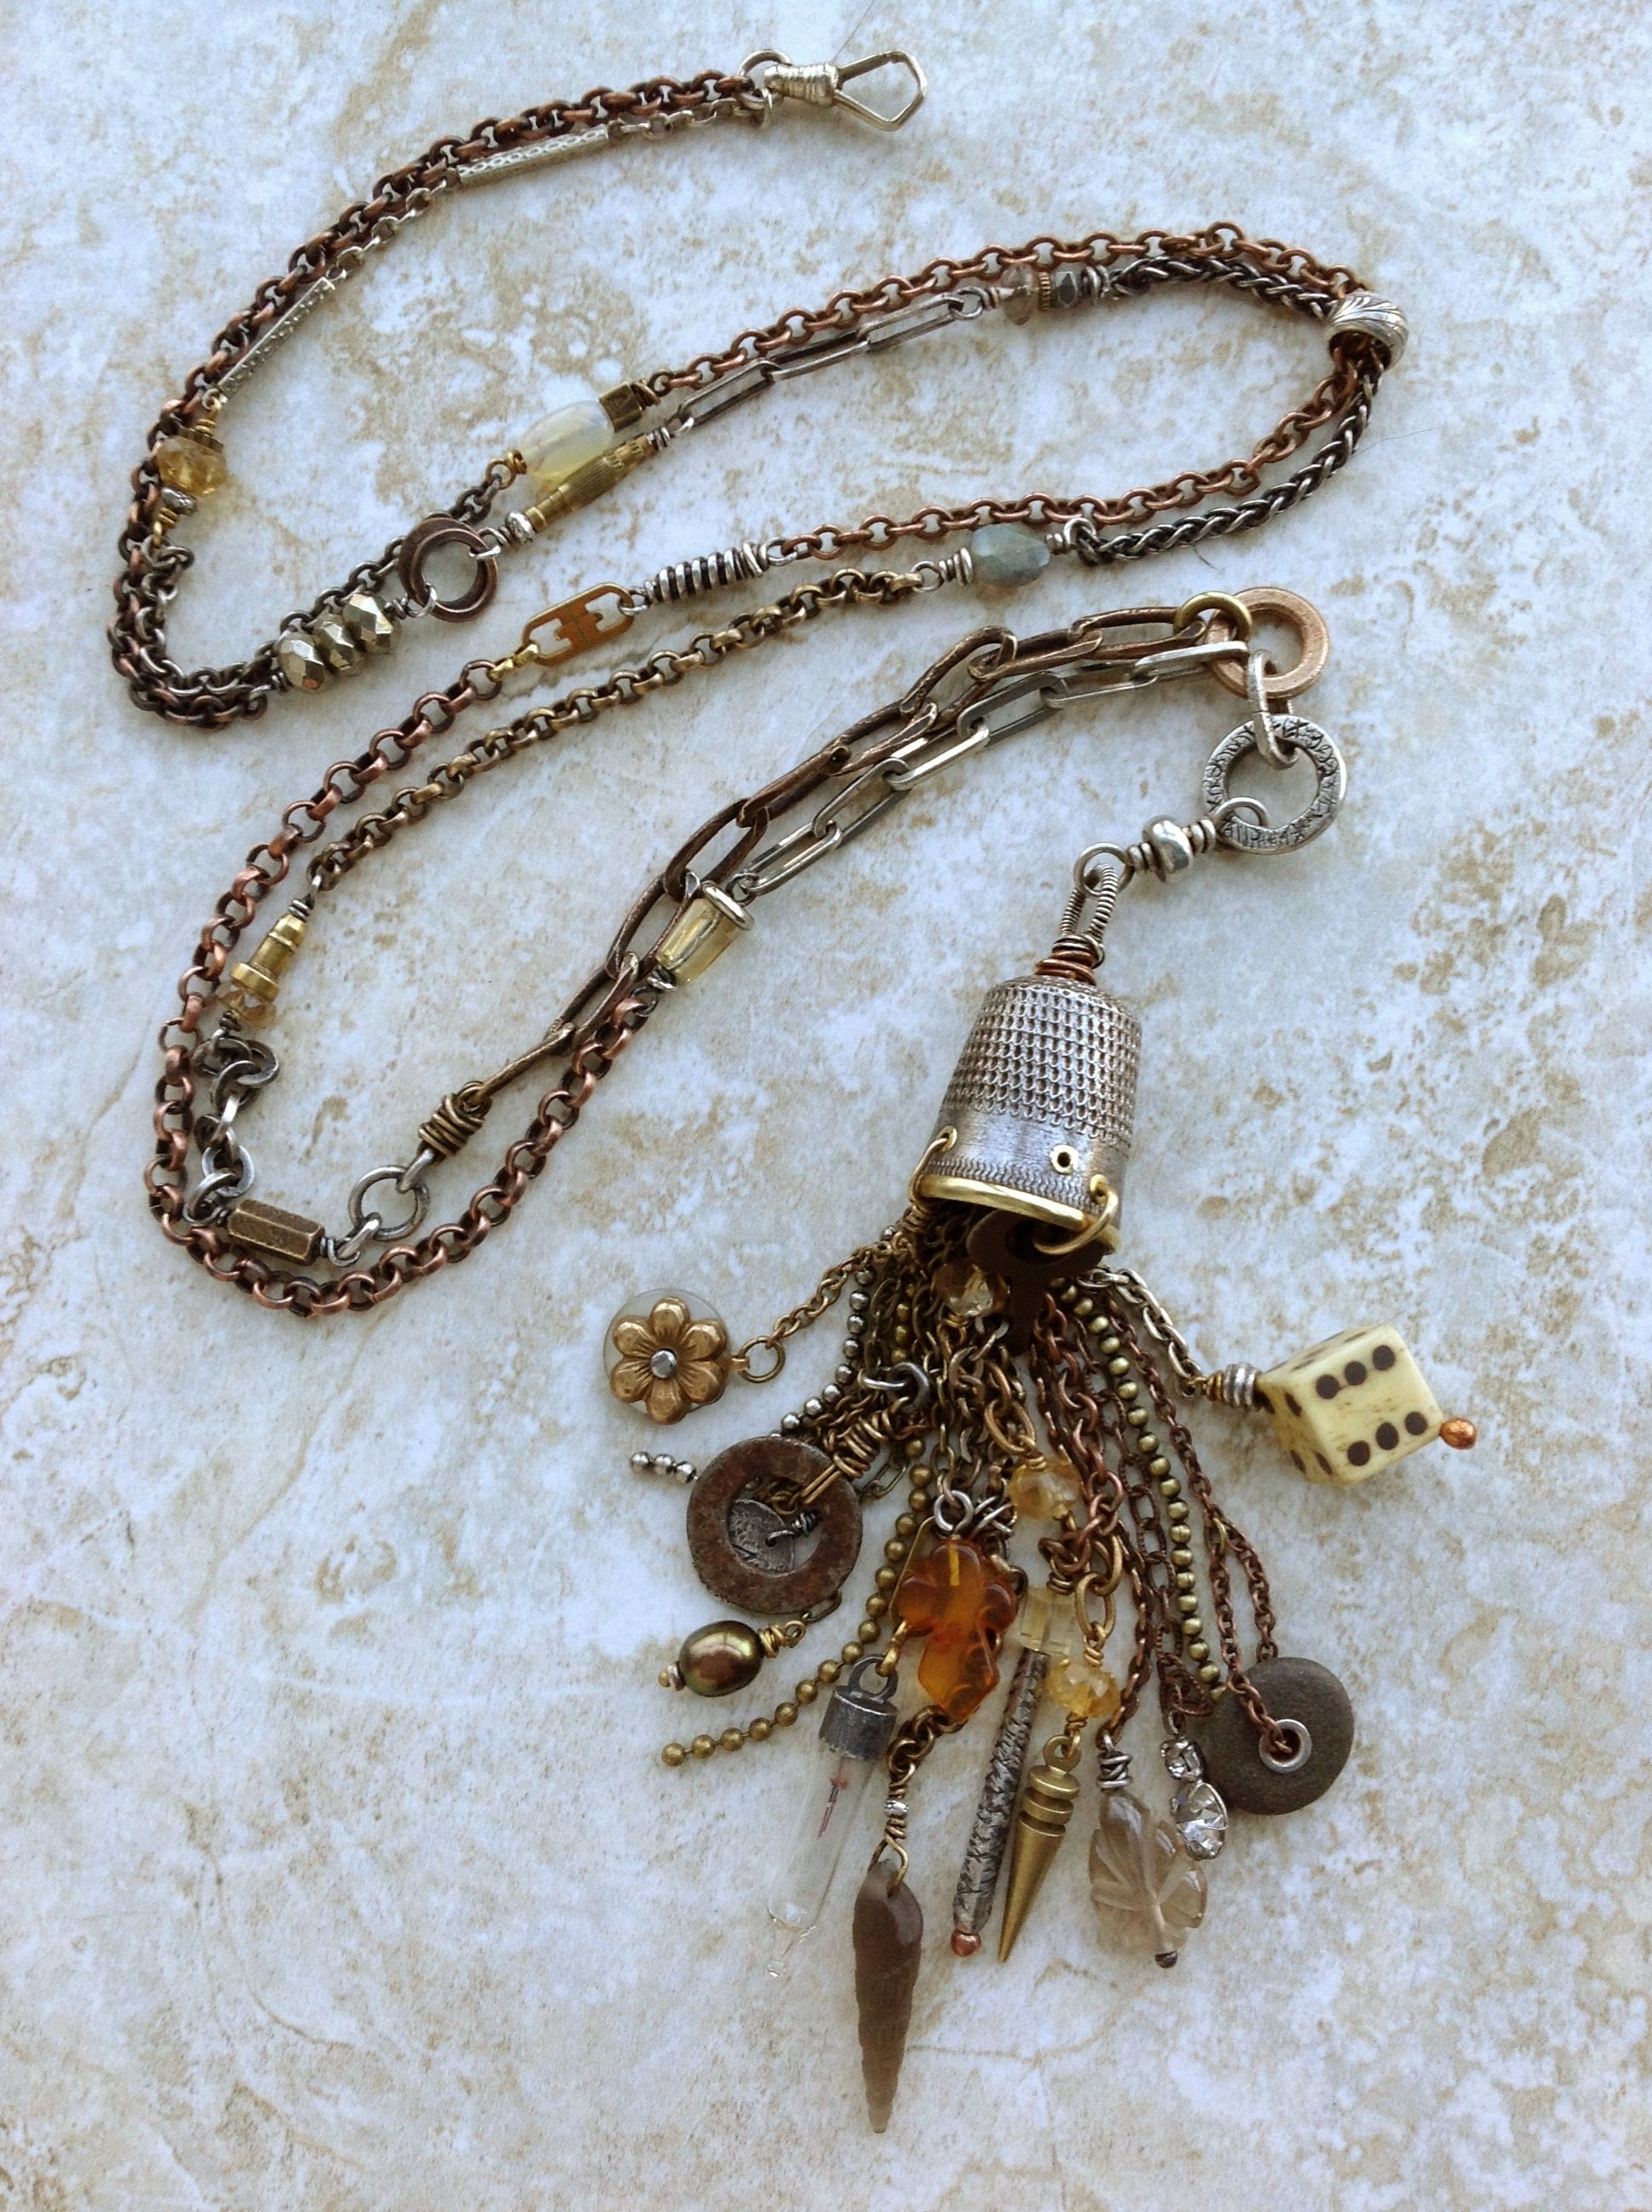 Thimble tassel with found object charms, on a collage chain.